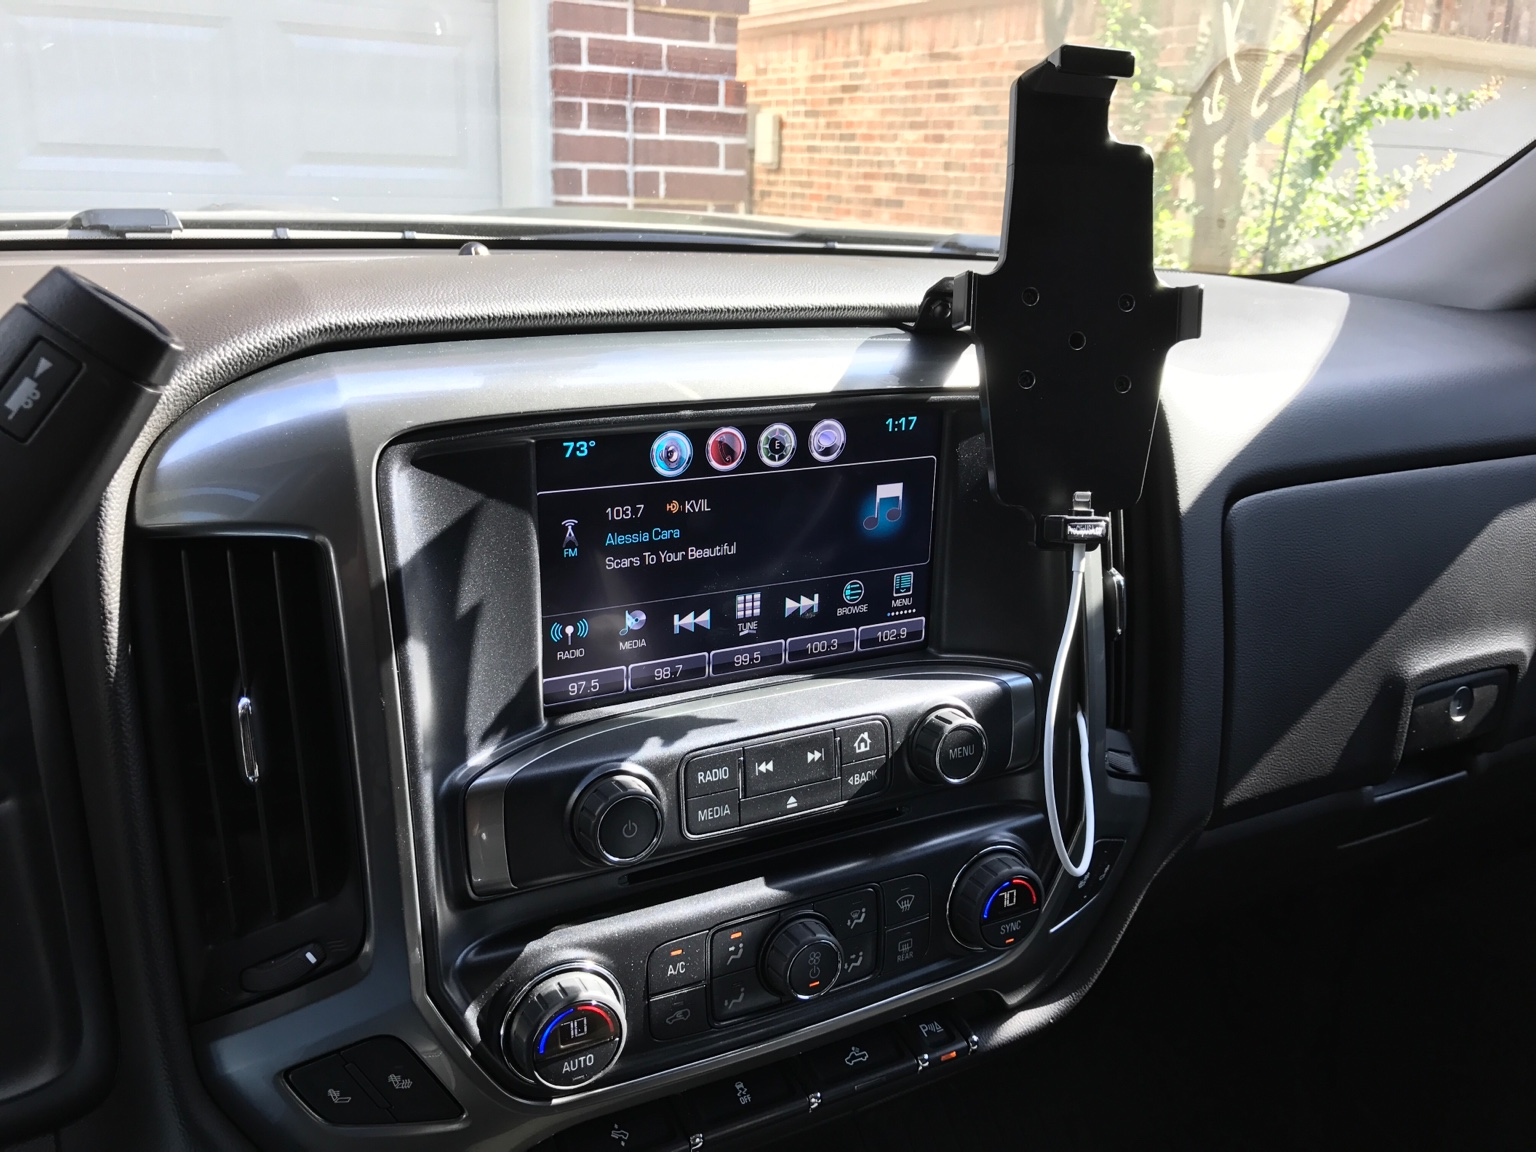 GMC Sierra - Where do you mount your phone? - Page 4 ...